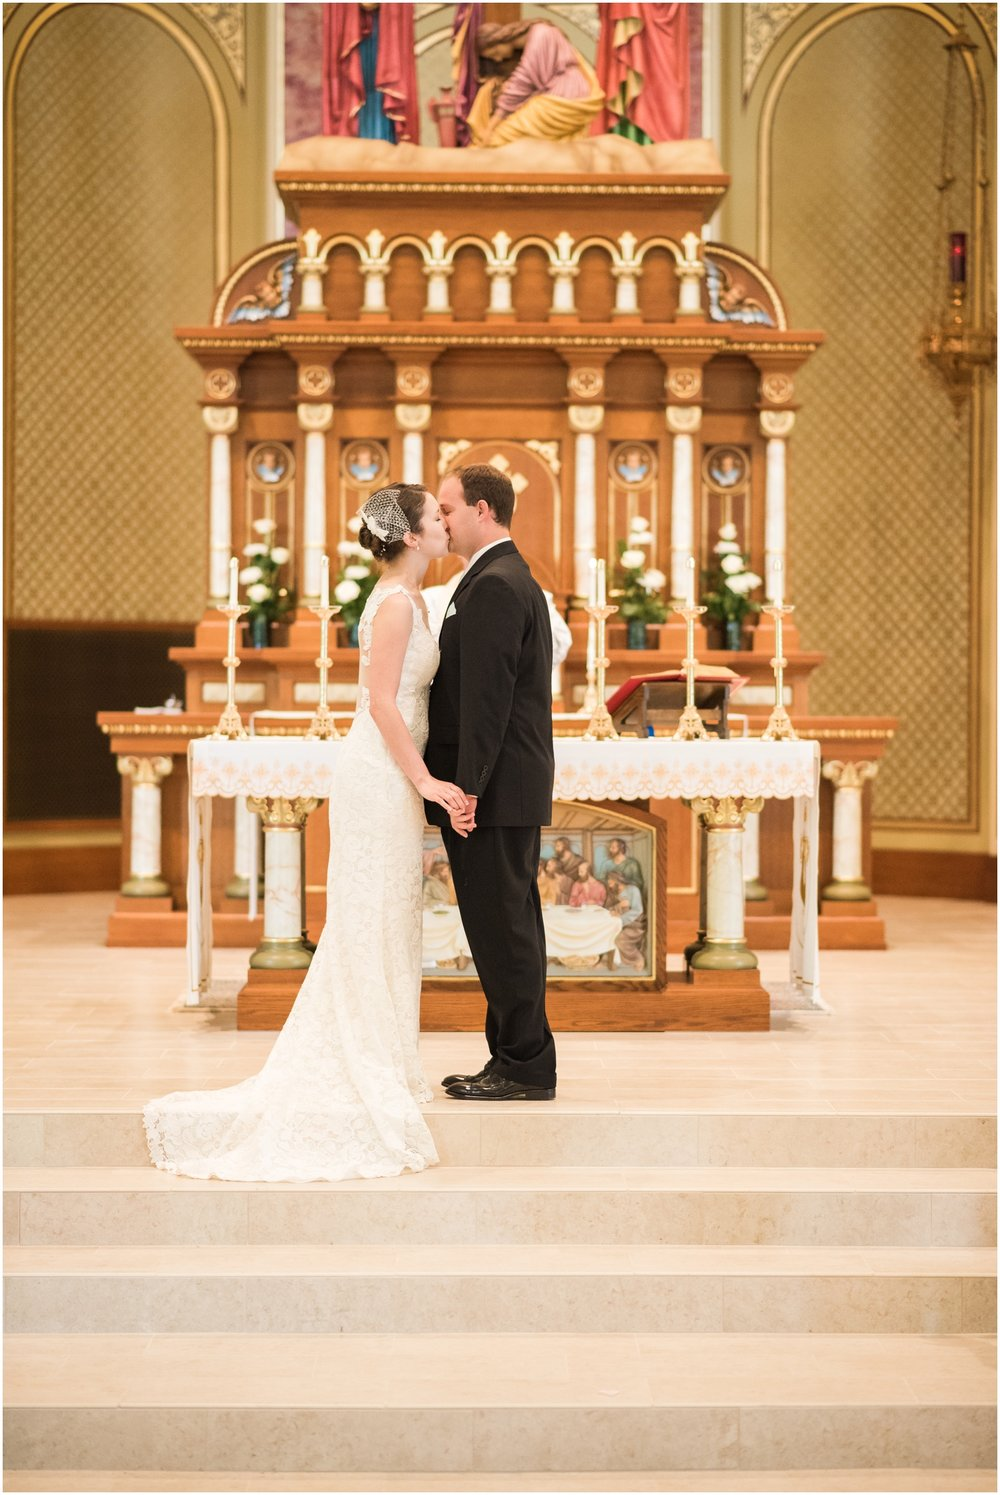 WISCONSIN DELLS WEDDING PHOTOGRAPHER | ST. CECILIA CATHOLIC CHURCH | WISCONSIN DELLS, WI | WEDDING_0245.jpg